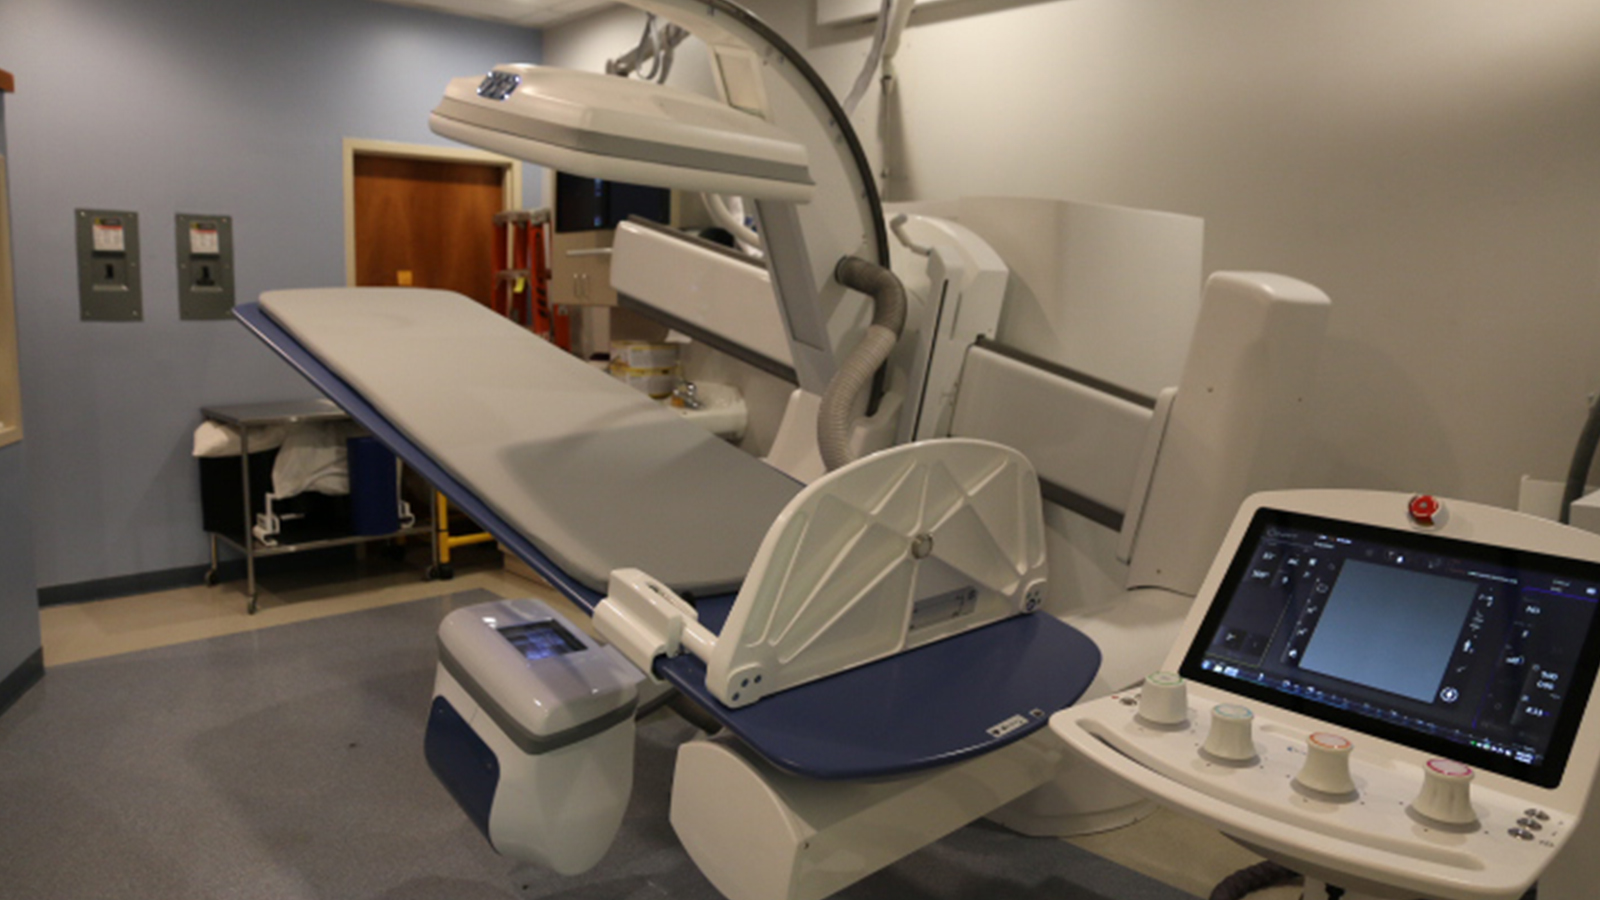 CMS Imaging                 announces the                 first clinical installation in the US of the Intelli-C at ImageCare